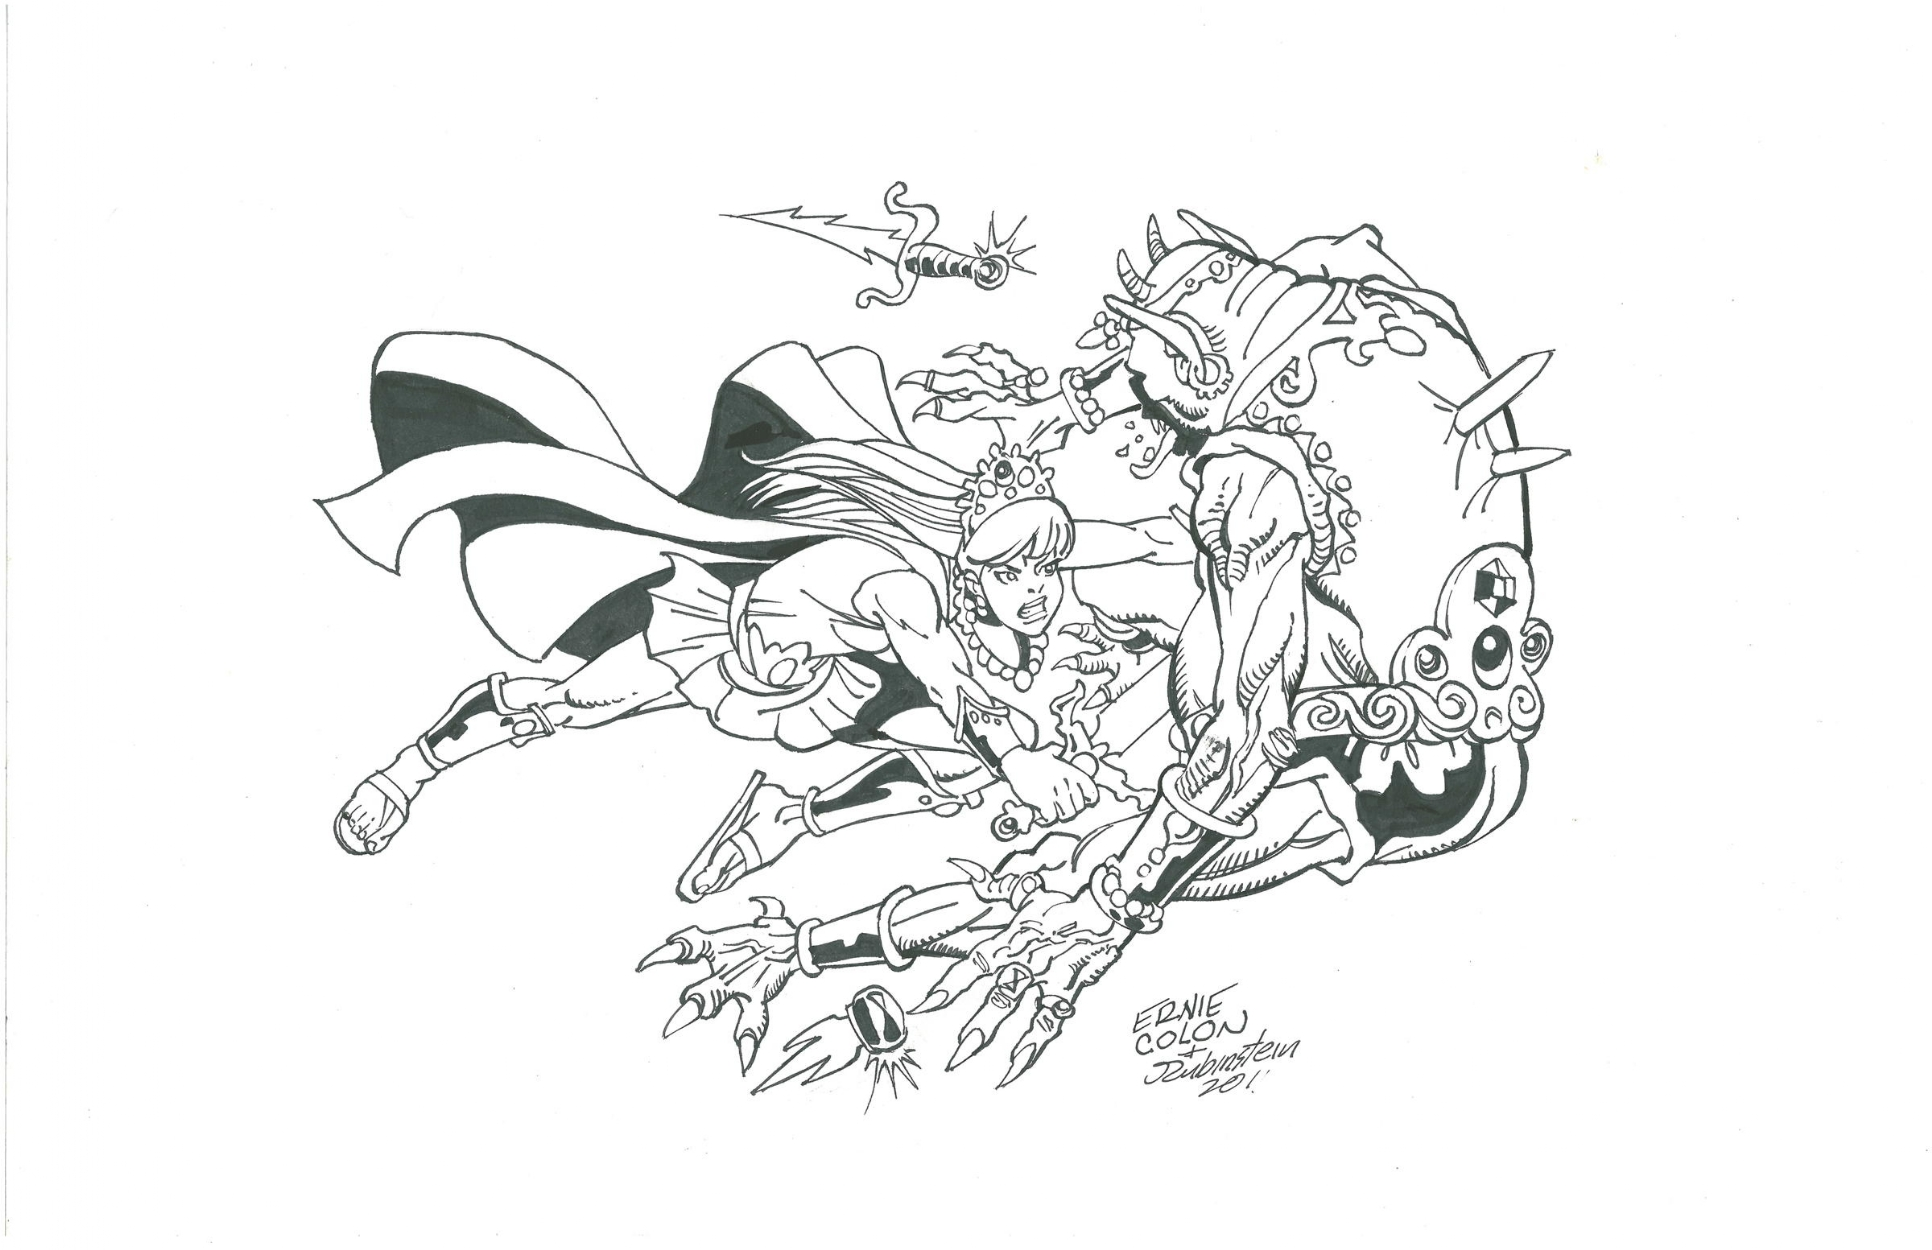 Amethyst in Battle by Ernie Colon and Joe Rubinstein Comic Art